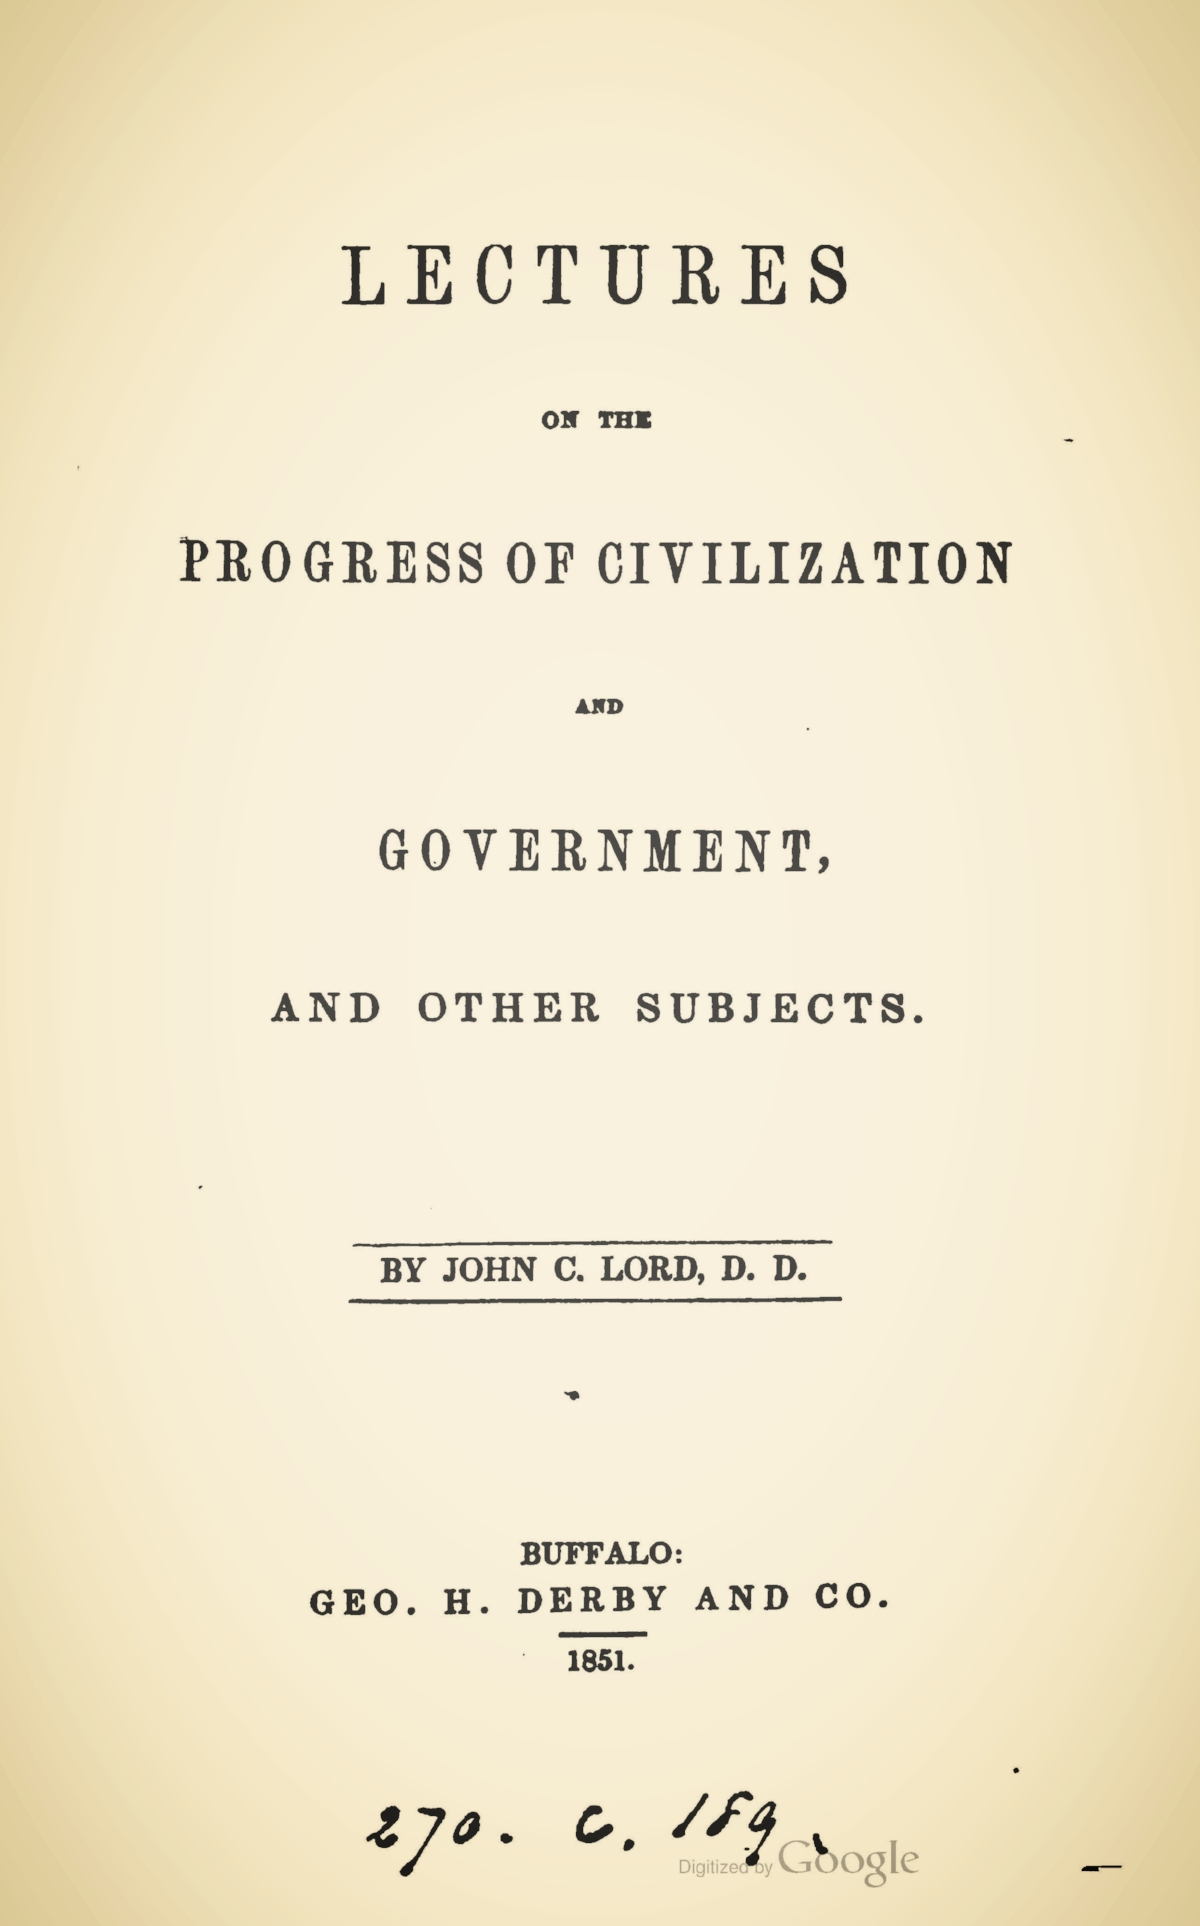 Lord, John Chase, Lectures on the Progress of Civilization and Government Title Page.jpg